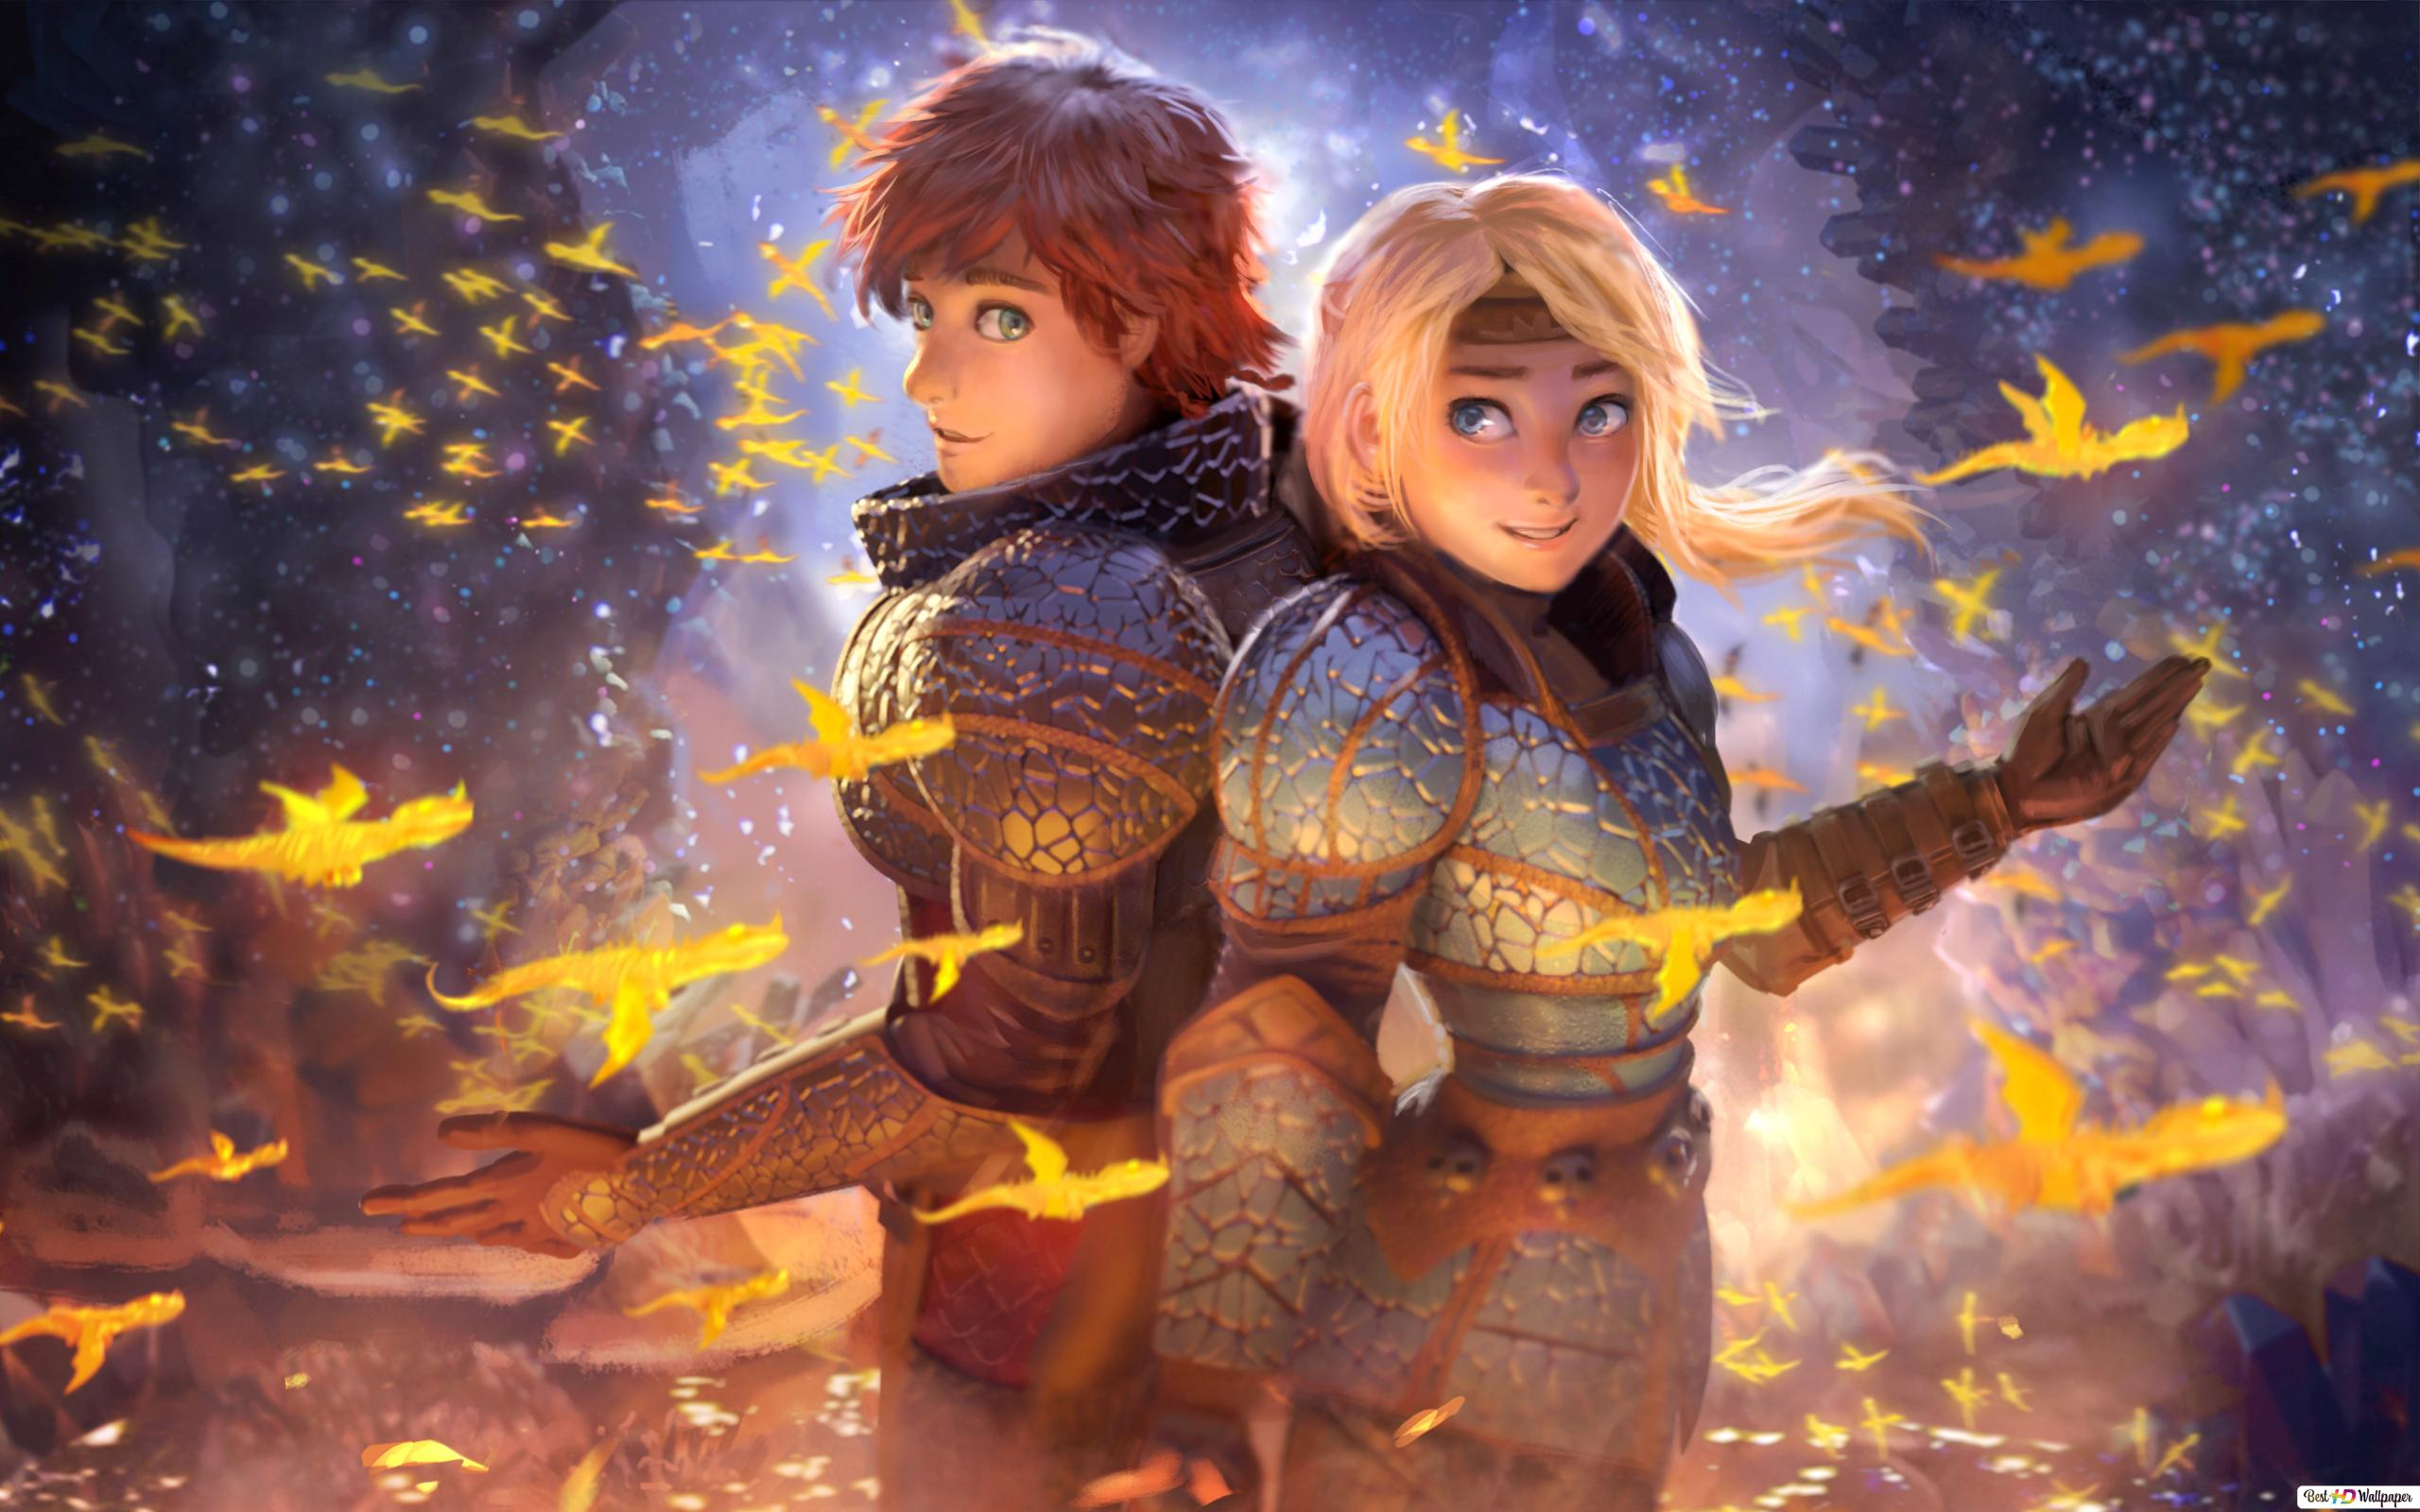 How To Train Your Dragon The Hidden World Hd Wallpaper Download